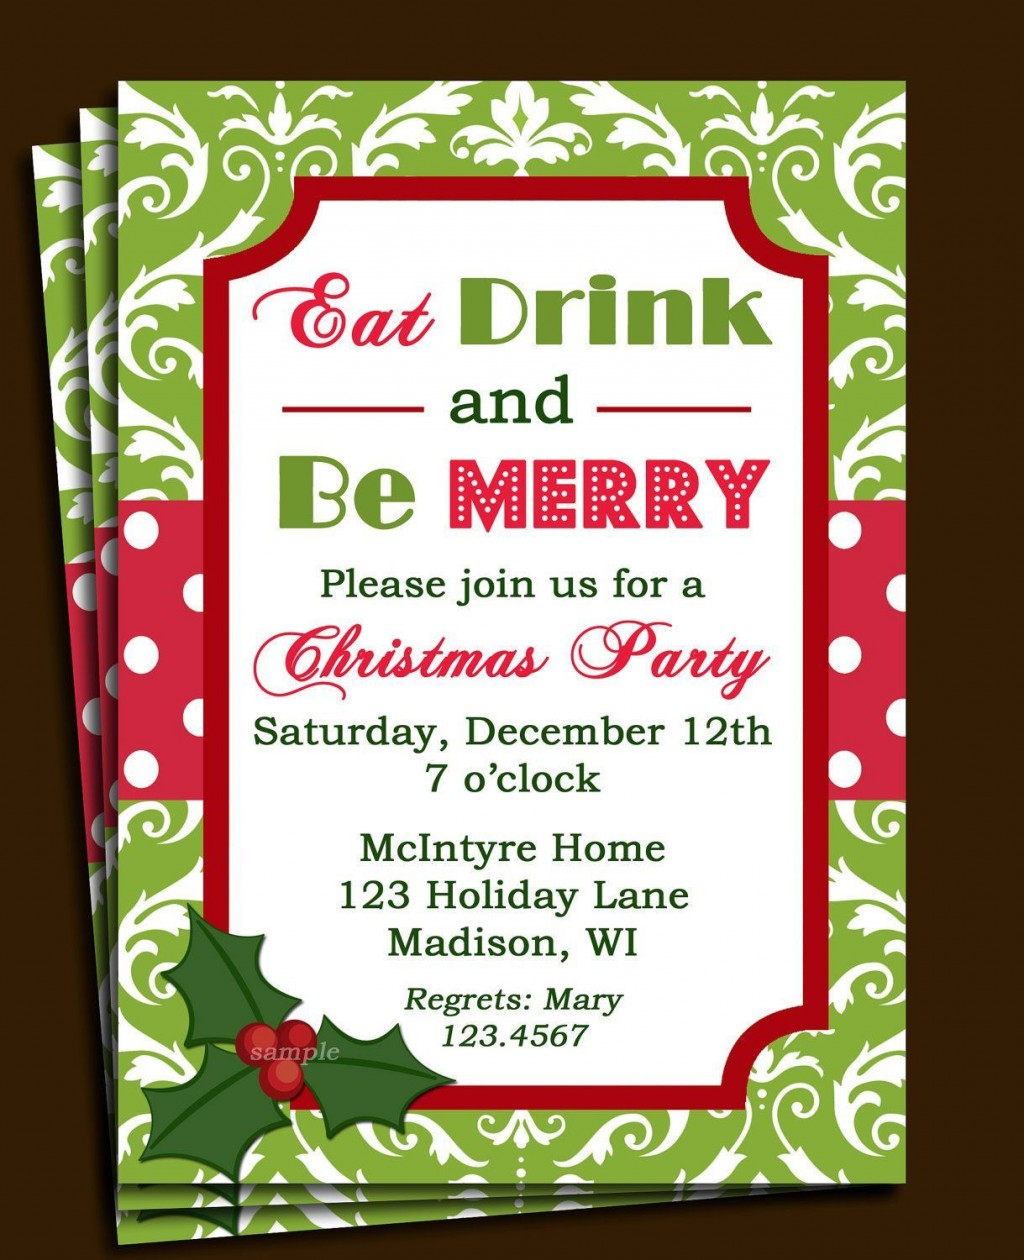 008 Excellent Free Busines Holiday Party Invitation Template Design  Templates Printable OfficeLarge